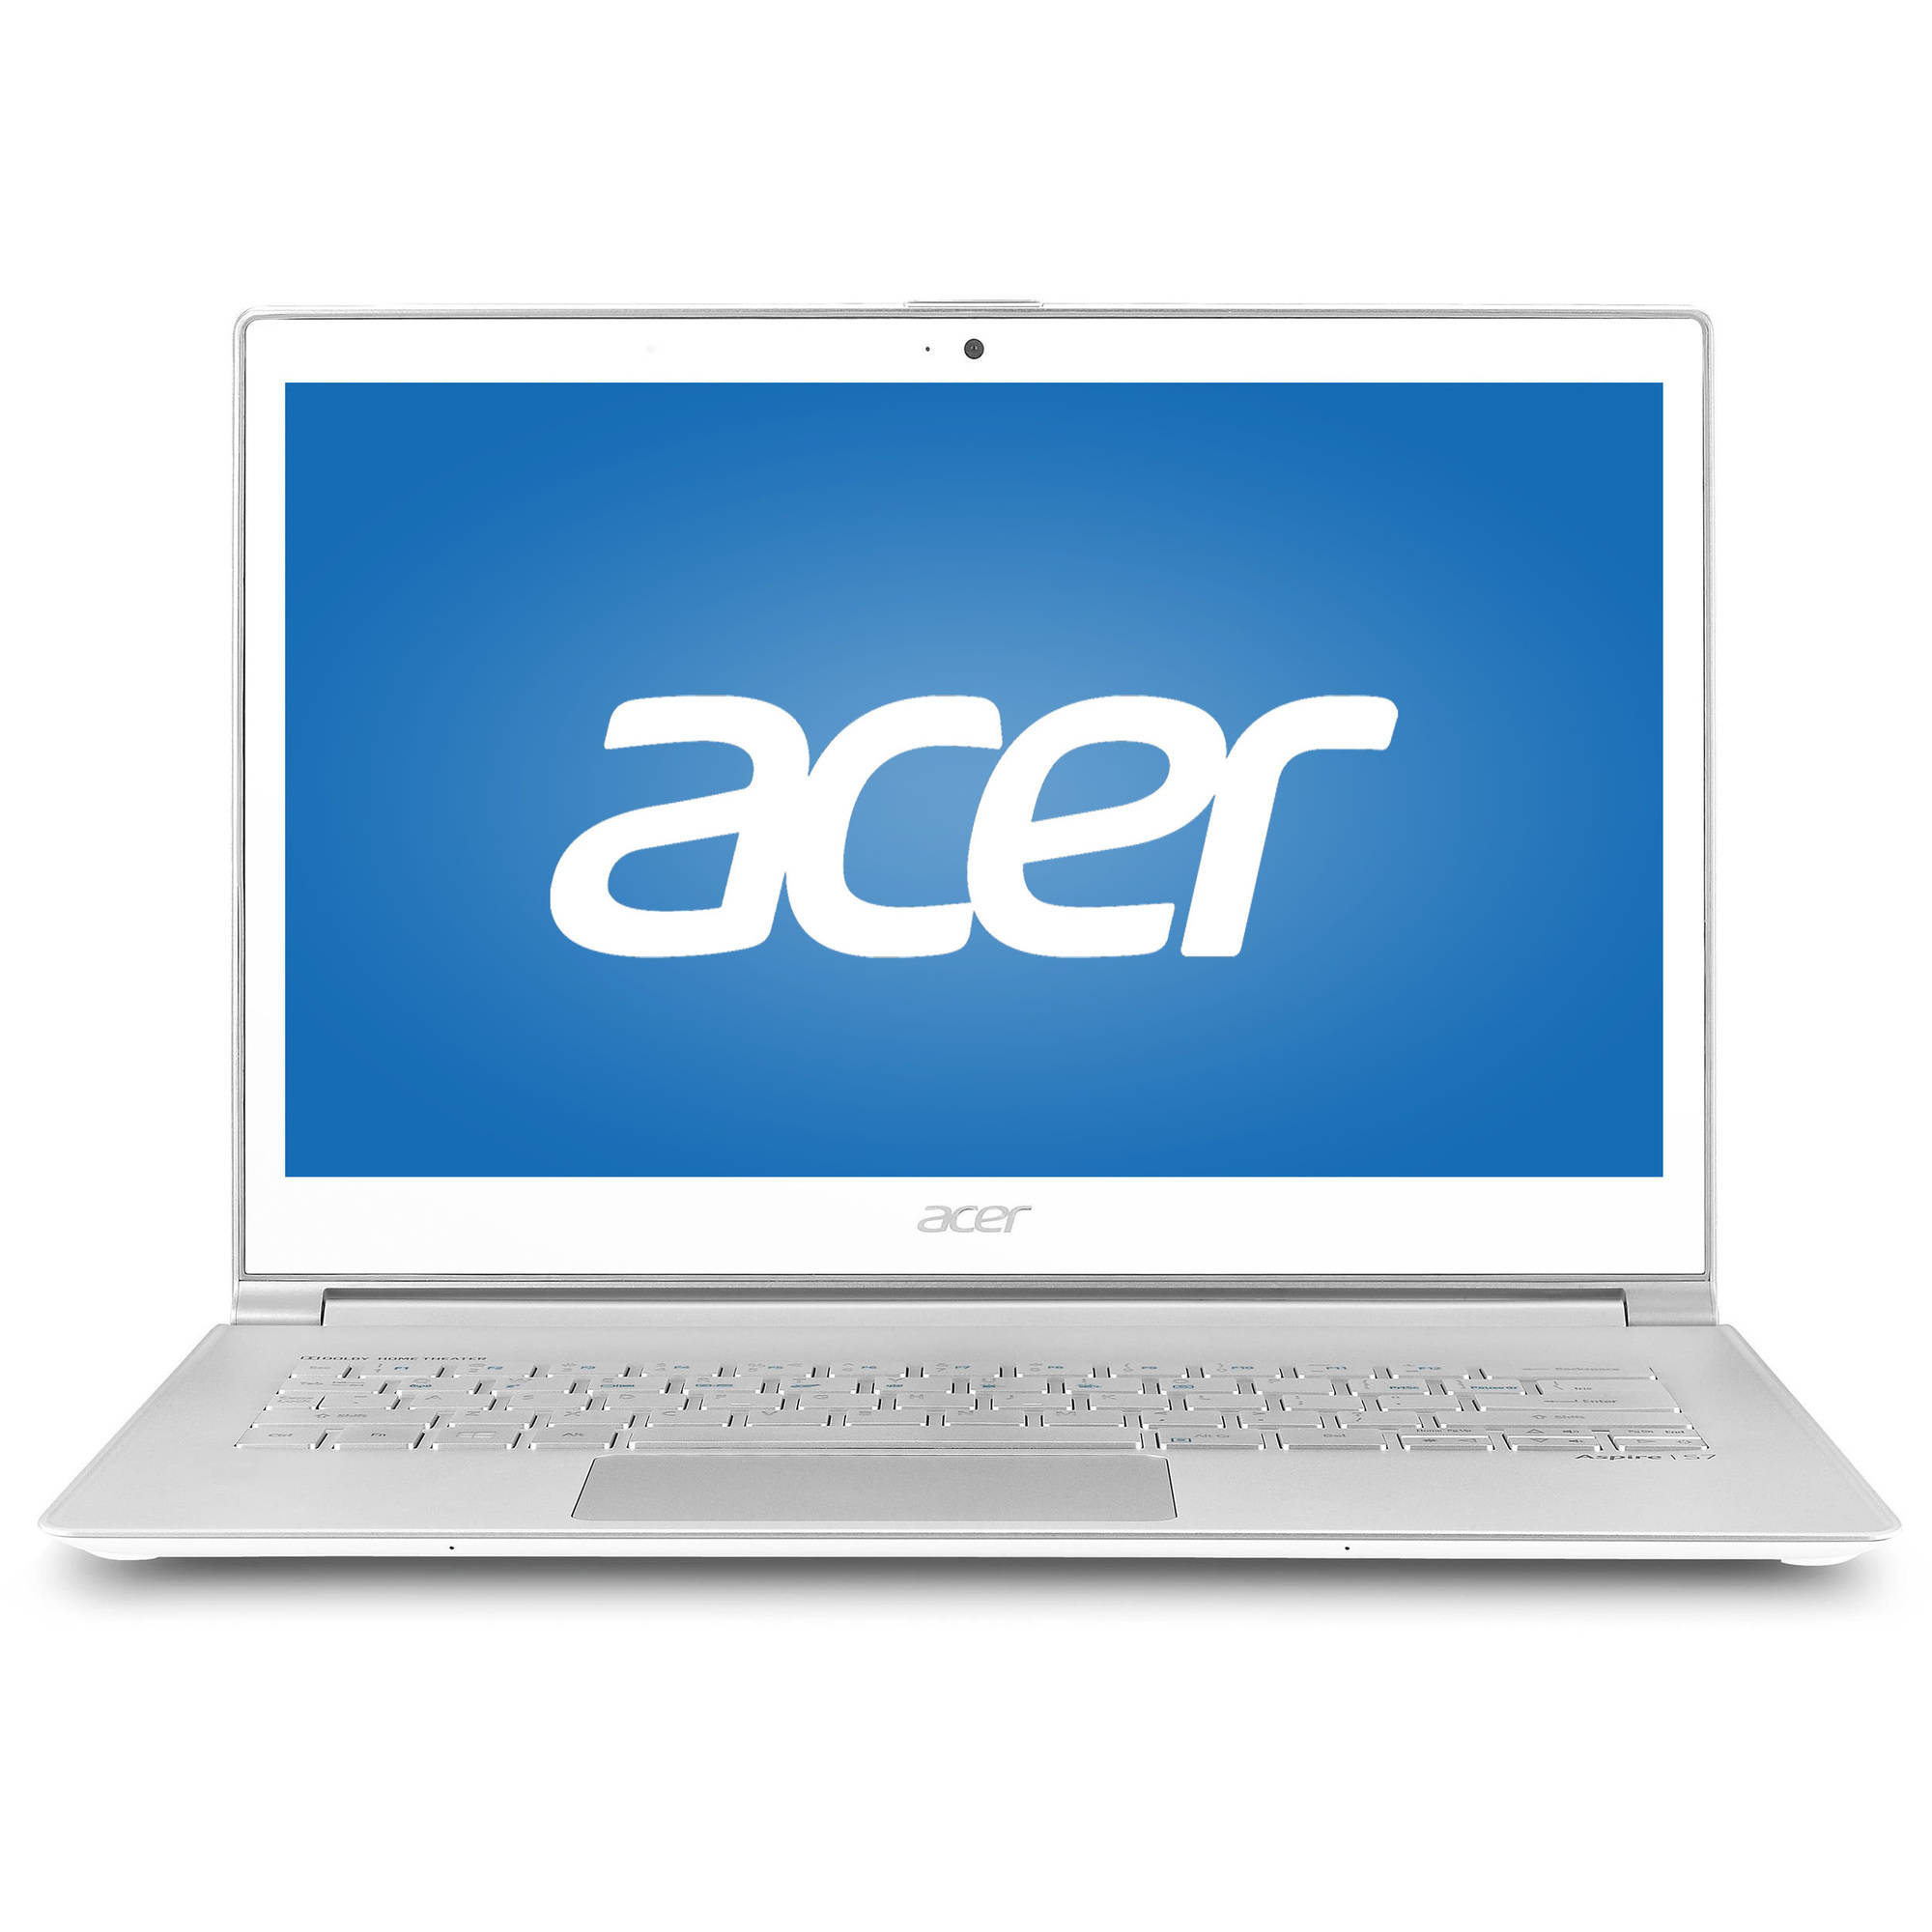 "Manufacturer Refurbished Acer Ultrabook Aspire S7-392-54208G12tws 13.3"" Laptop, Touchscreen, Windows 8, Intel Core i5-4200U Processor, 8GB RAM, 128GB Solid State Drive"